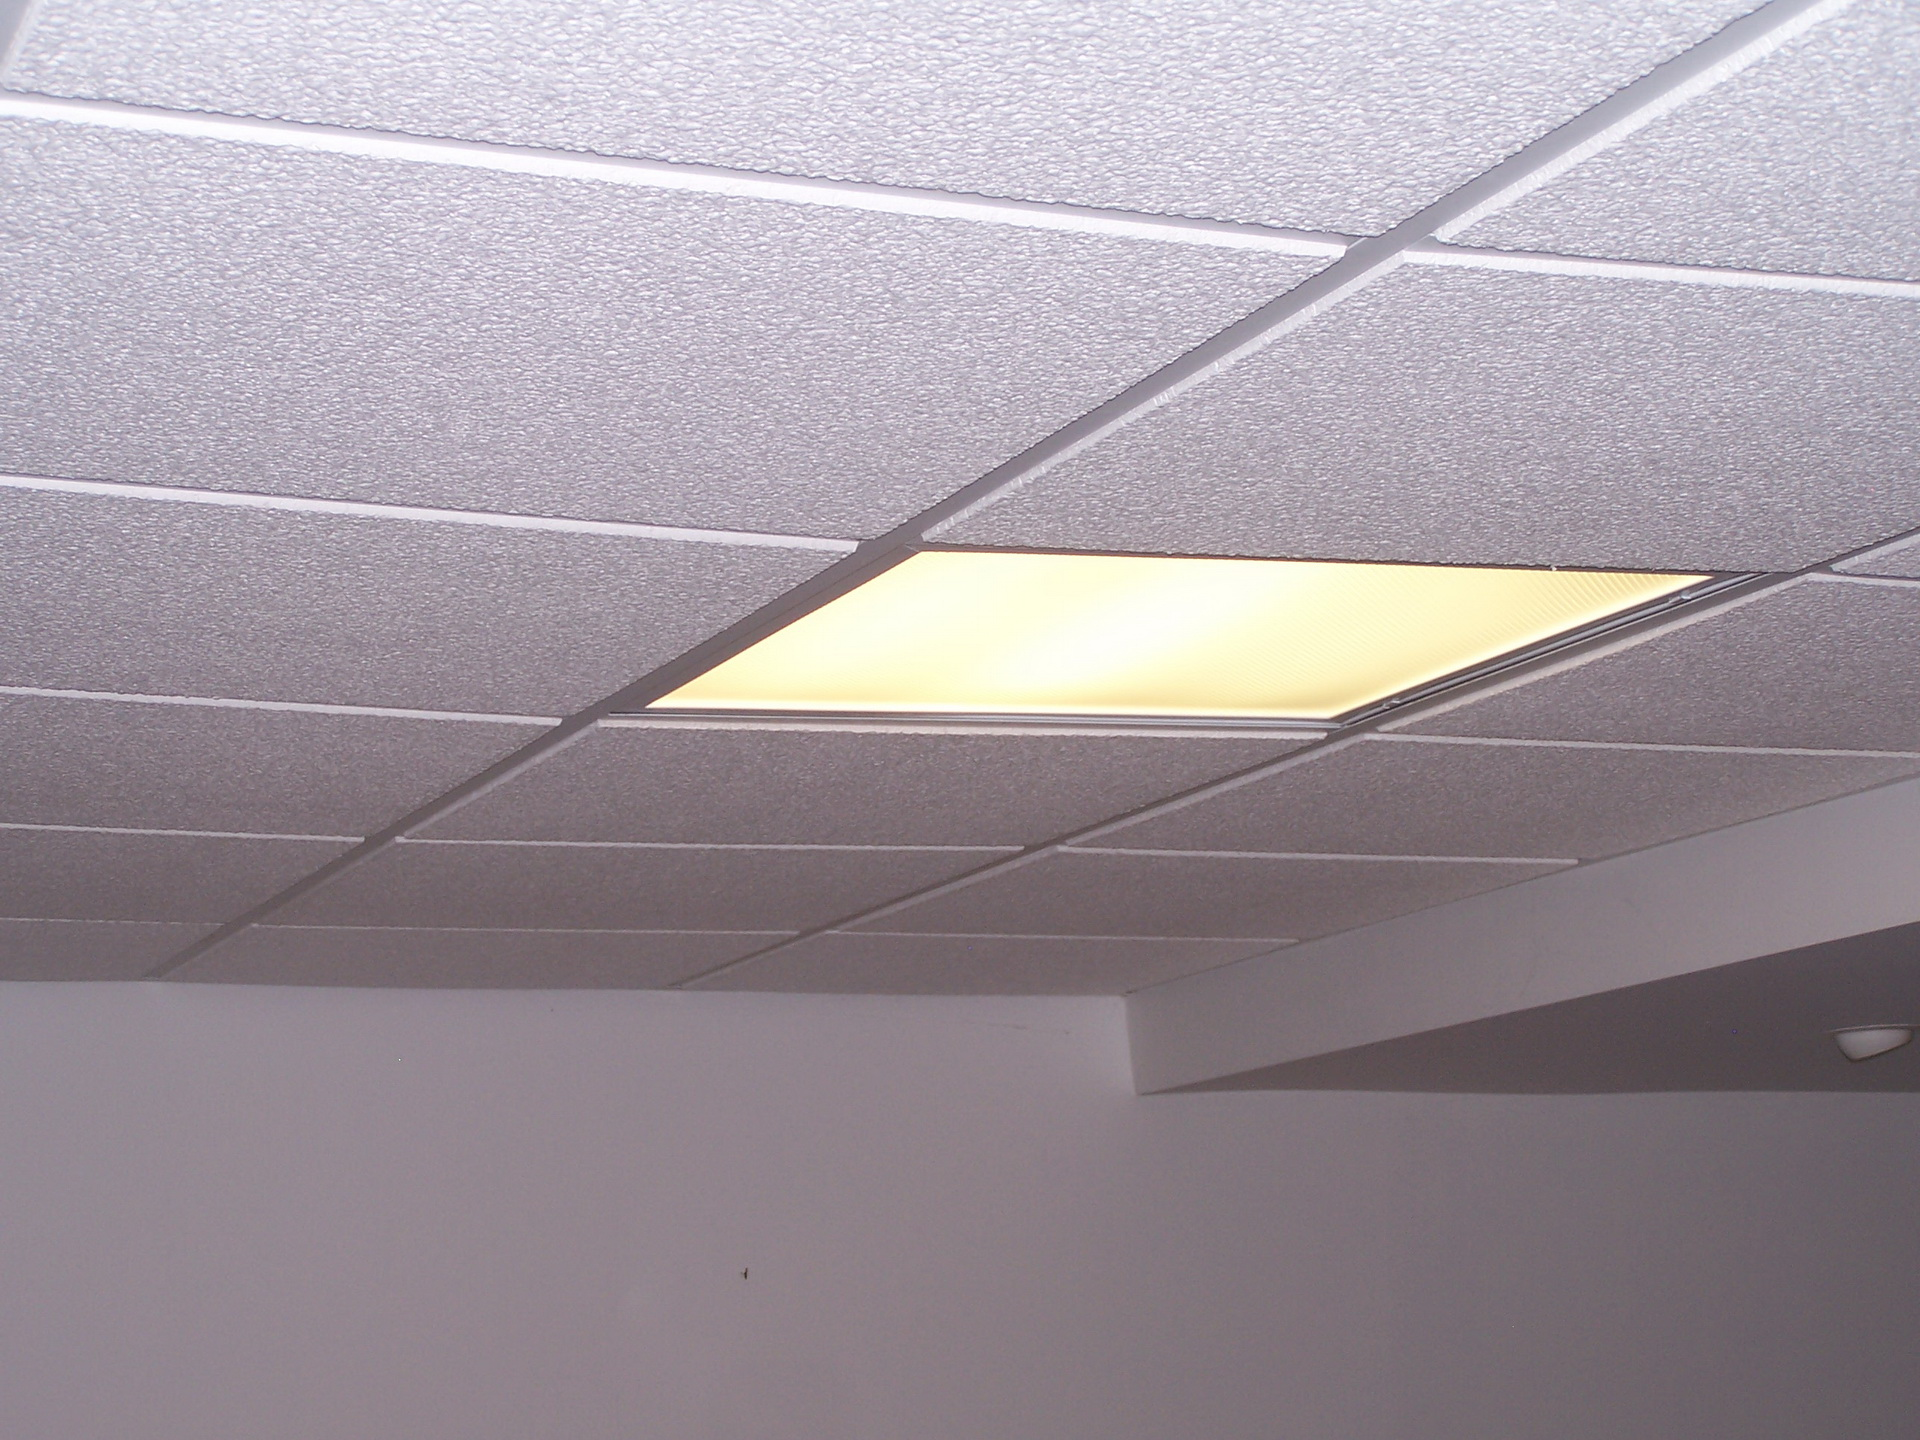 Suspended Ceiling Fluorescent Lights